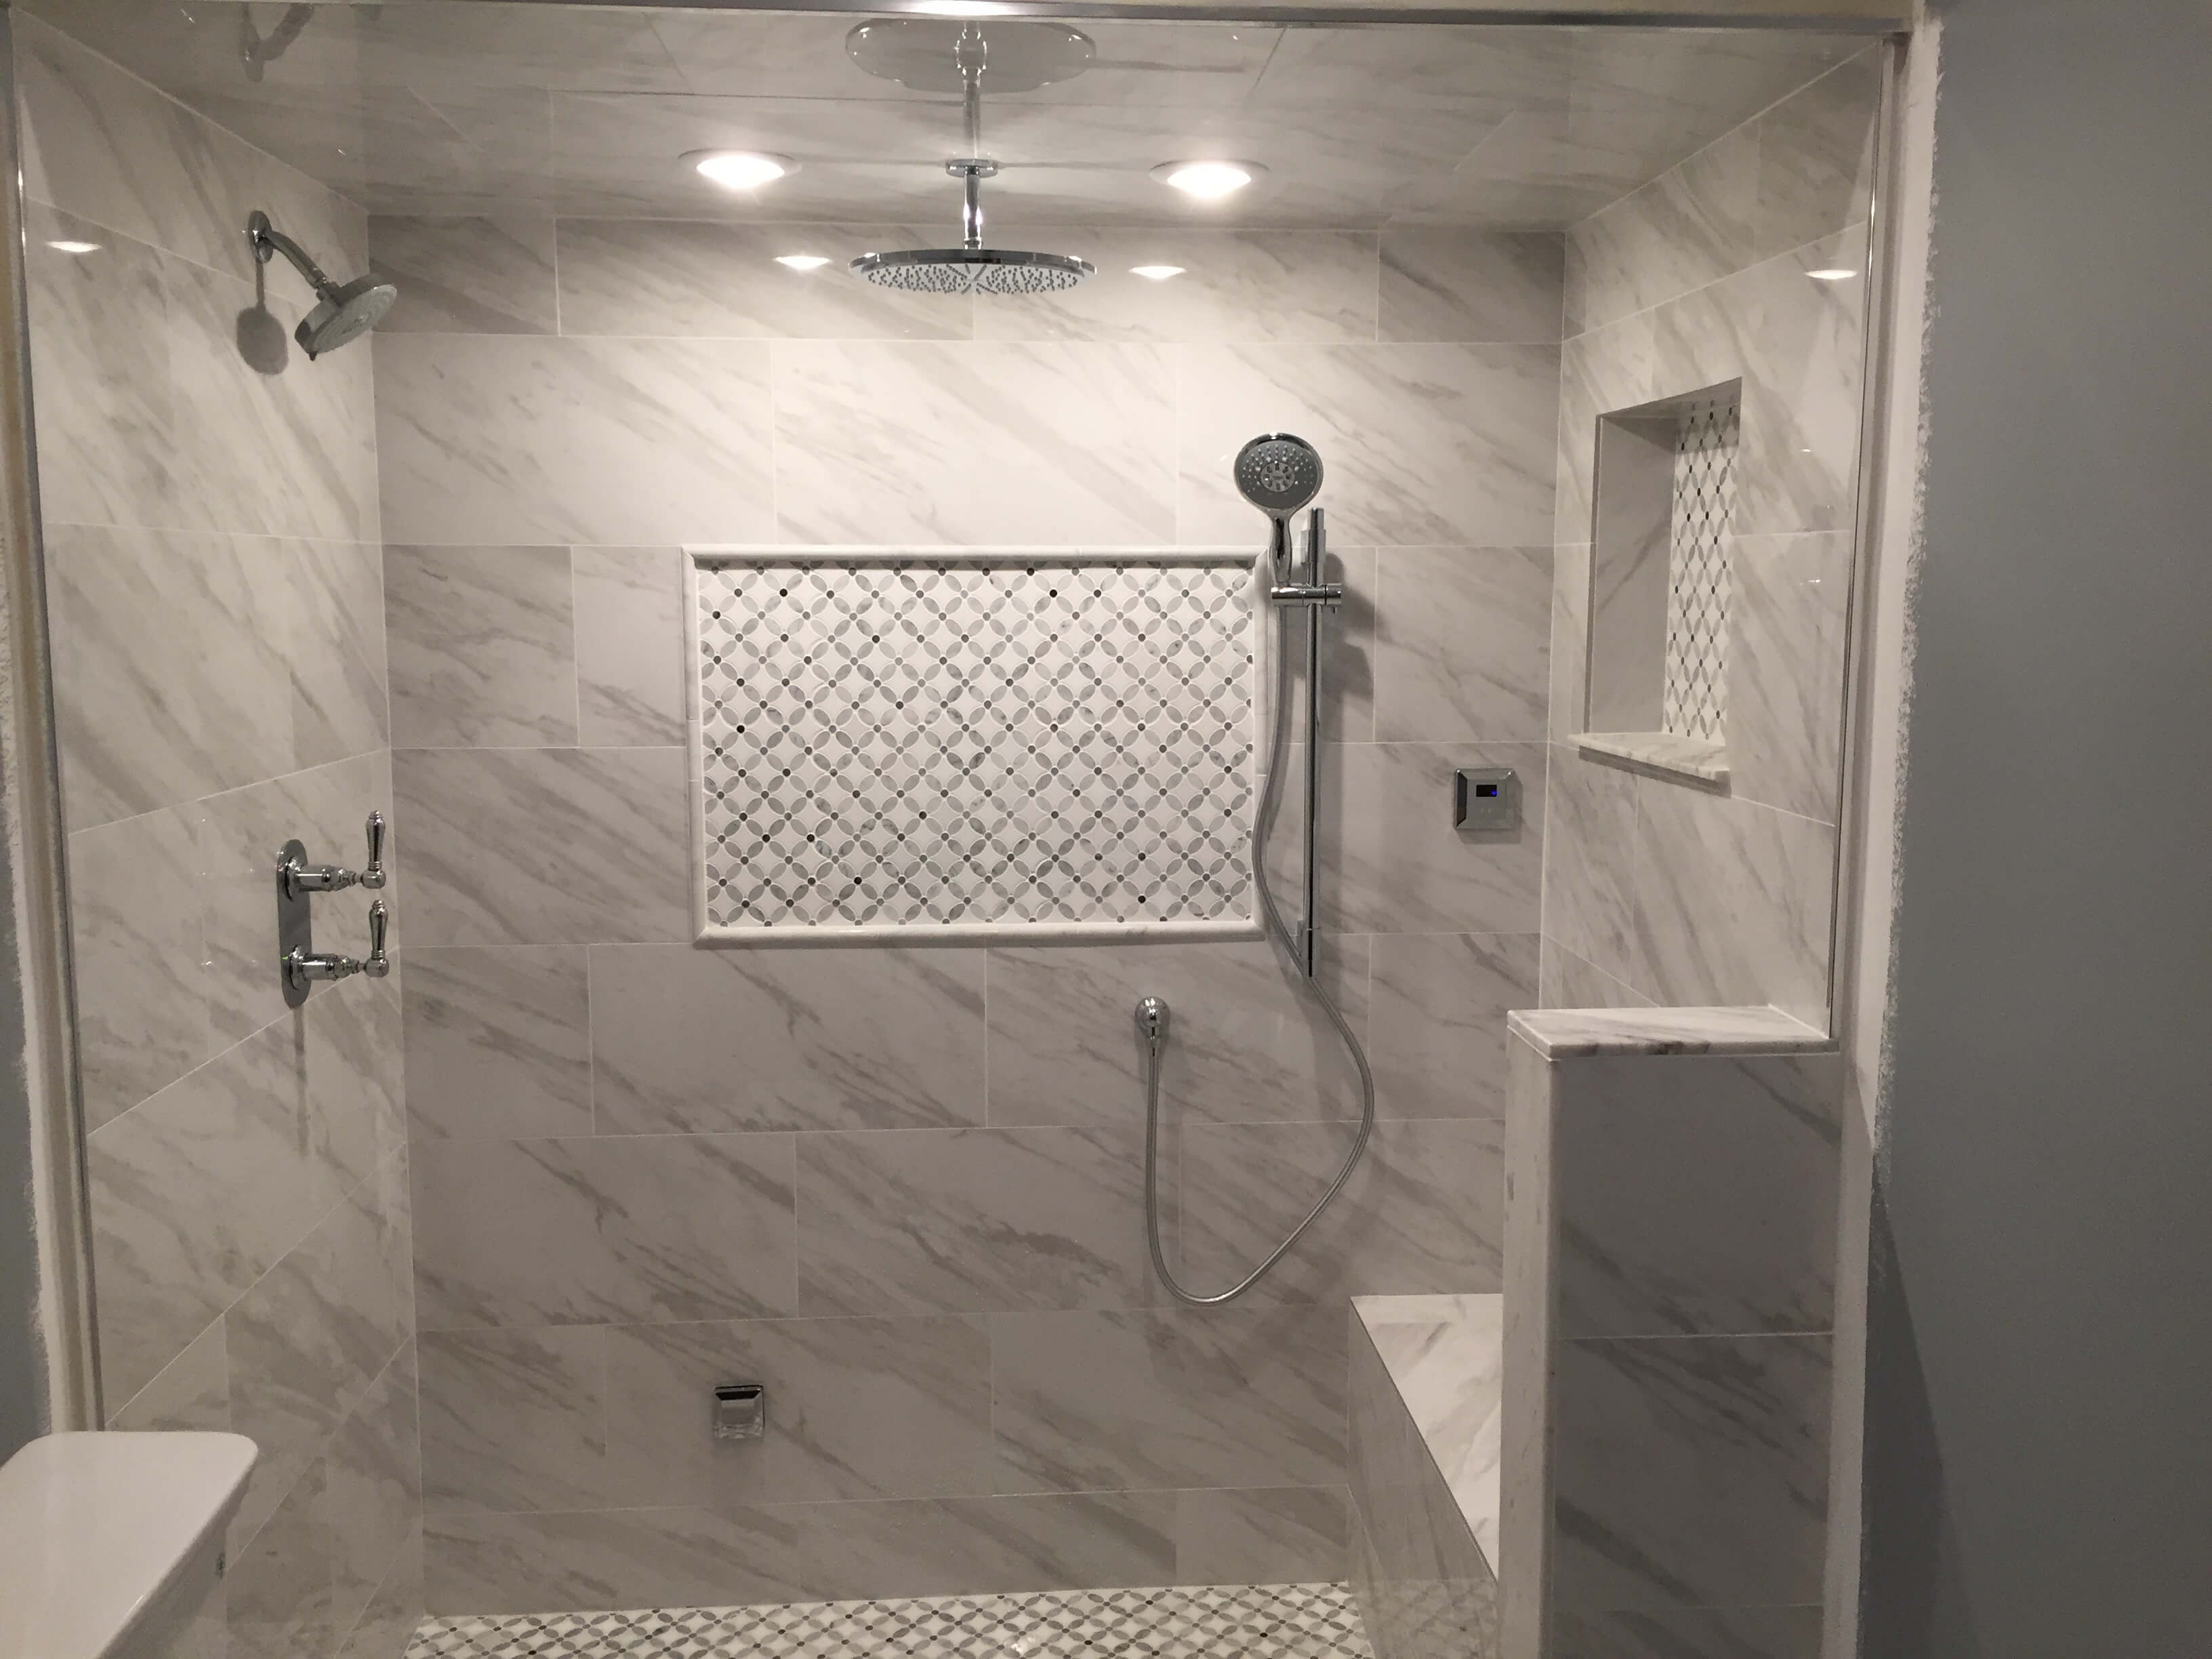 remodeling experts pictures of bathrooms, kitchens